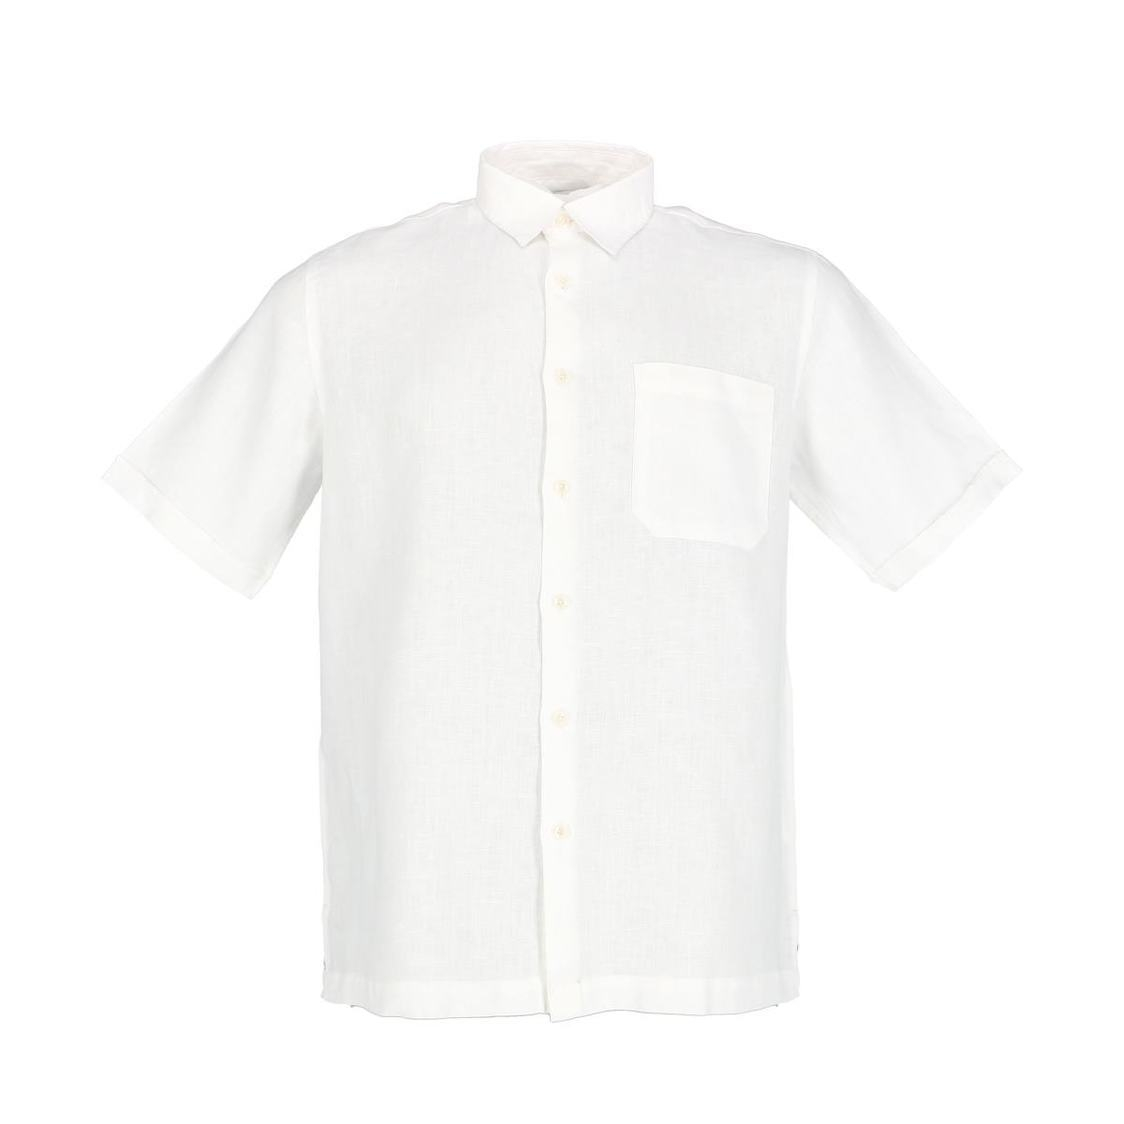 Mens Short Sleeve Linen Shirt In White